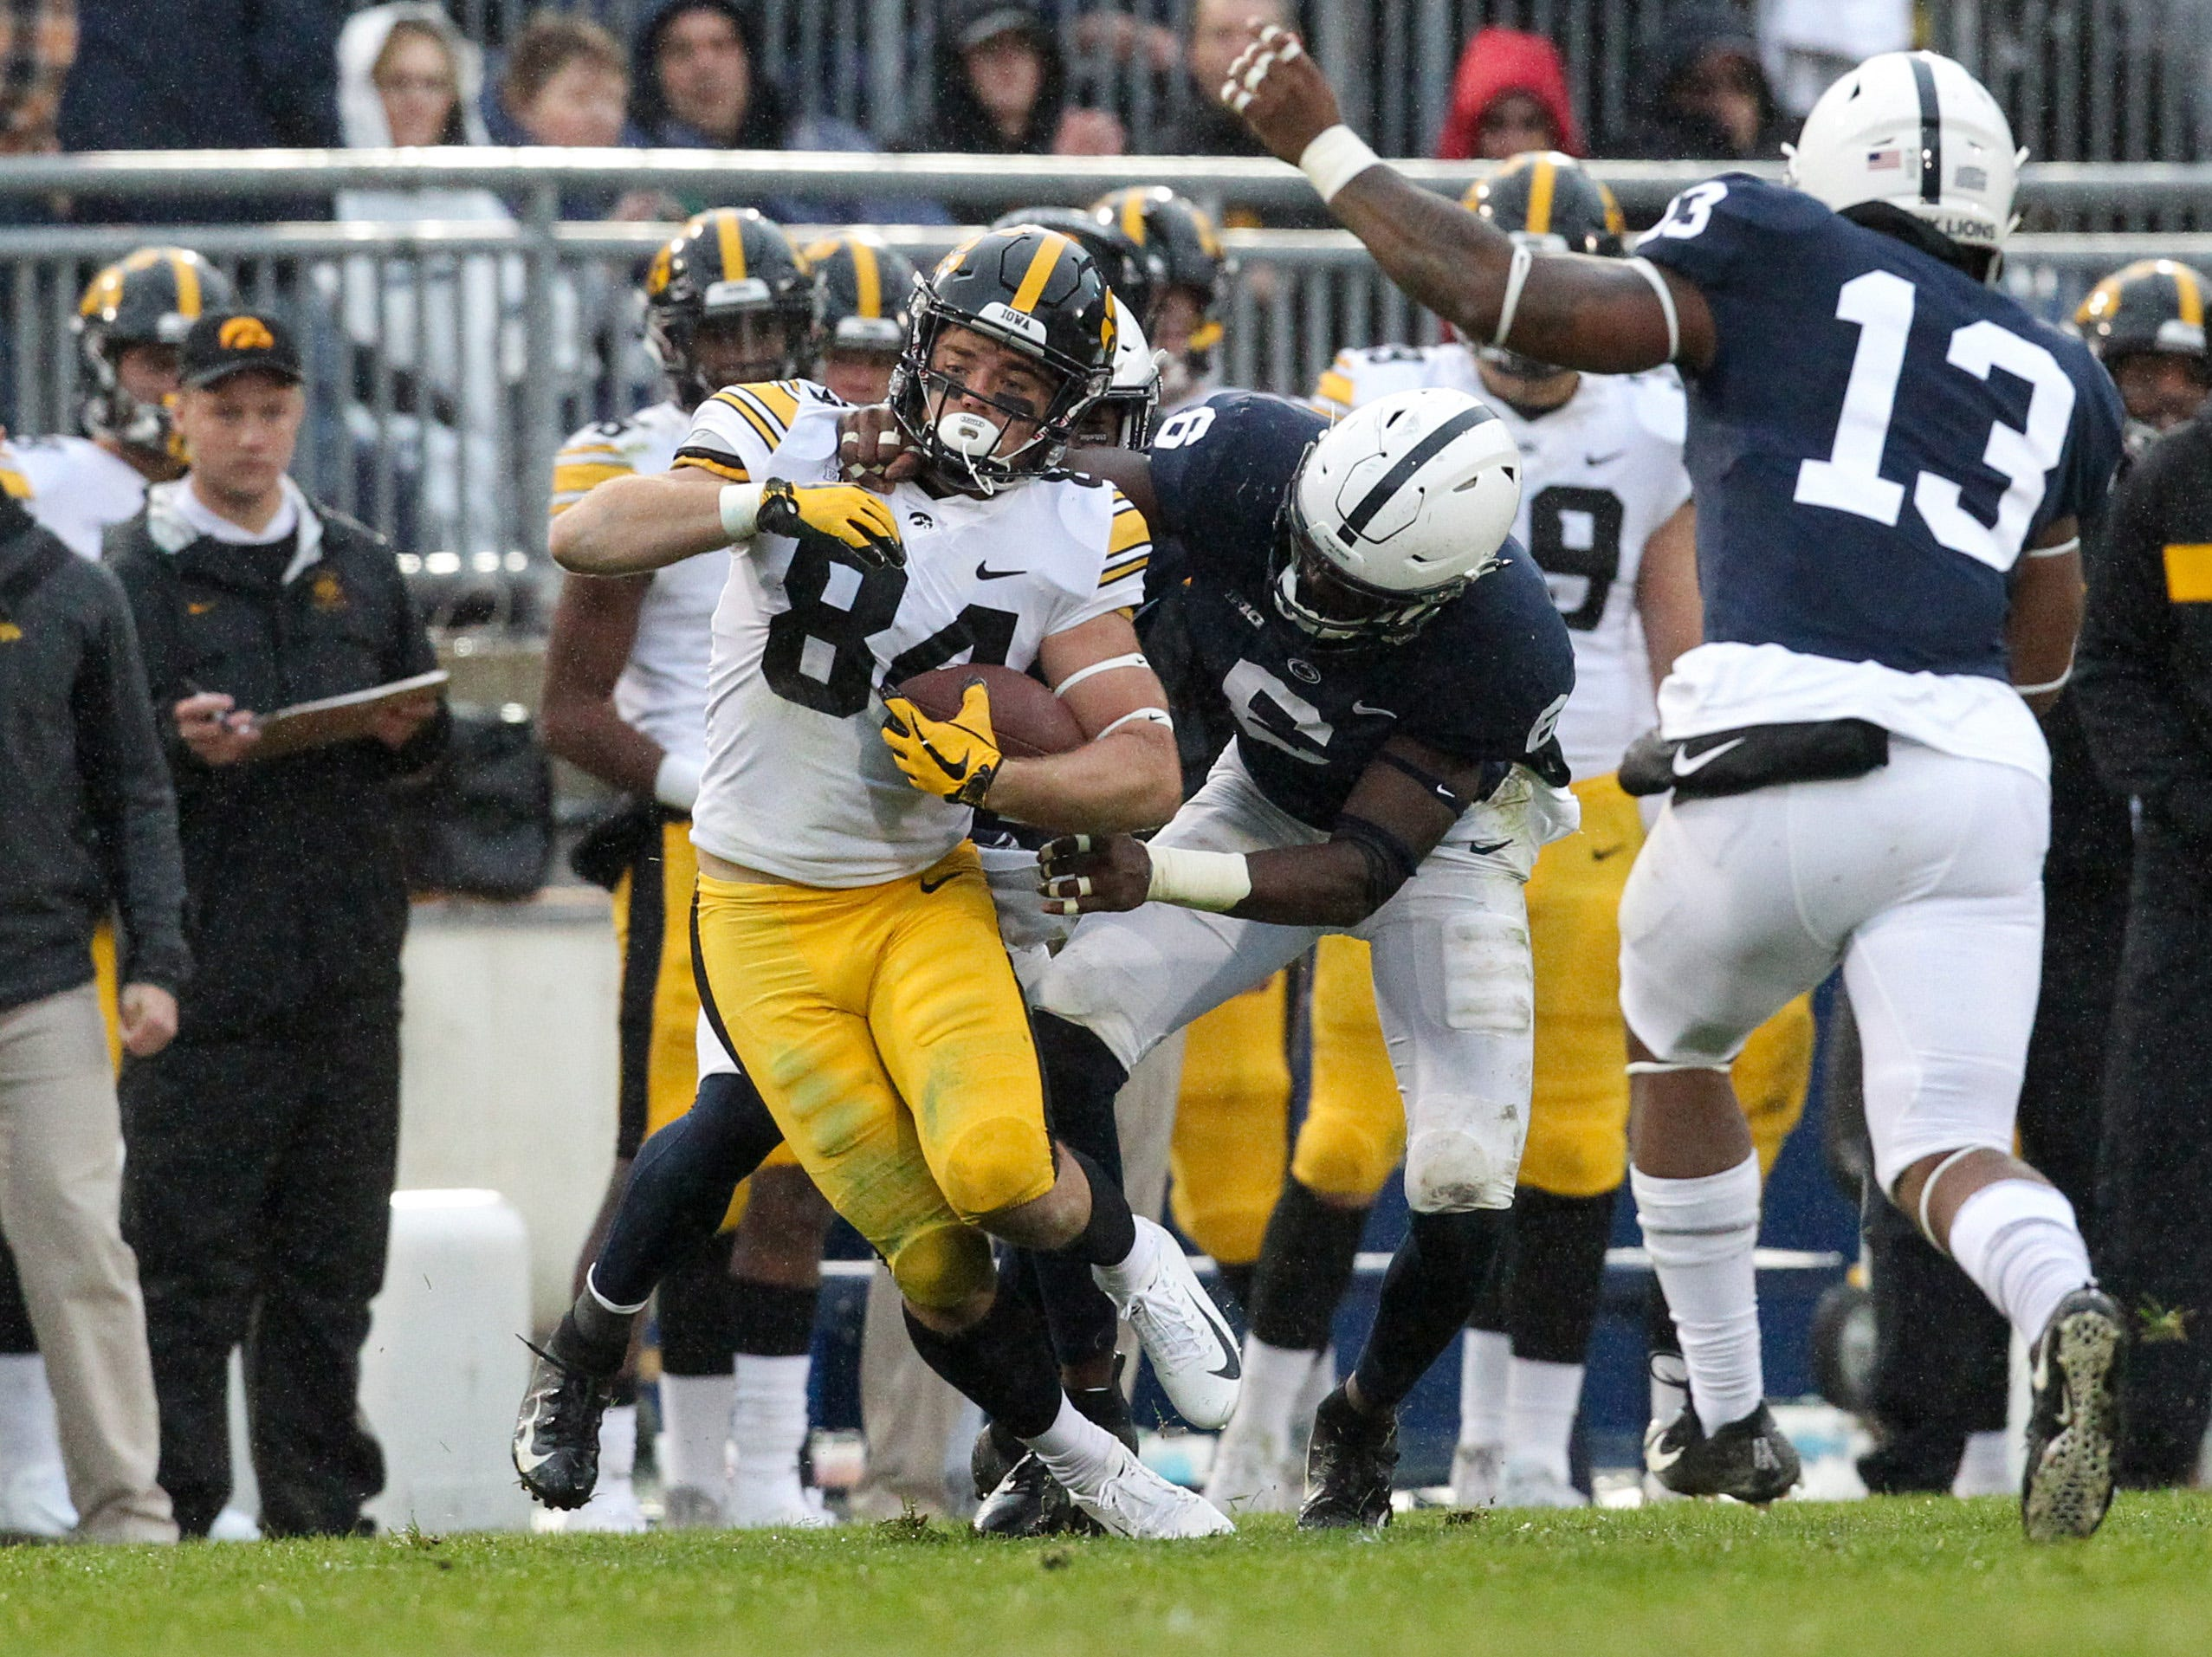 Oct 27, 2018; University Park, PA, USA; Iowa Hawkeyes wide receiver Nick Easley (84) runs the ball against Penn State Nittany Lions linebacker Cam Brown (6) during the second quarter at Beaver Stadium. Mandatory Credit: Matthew O'Haren-USA TODAY Sports